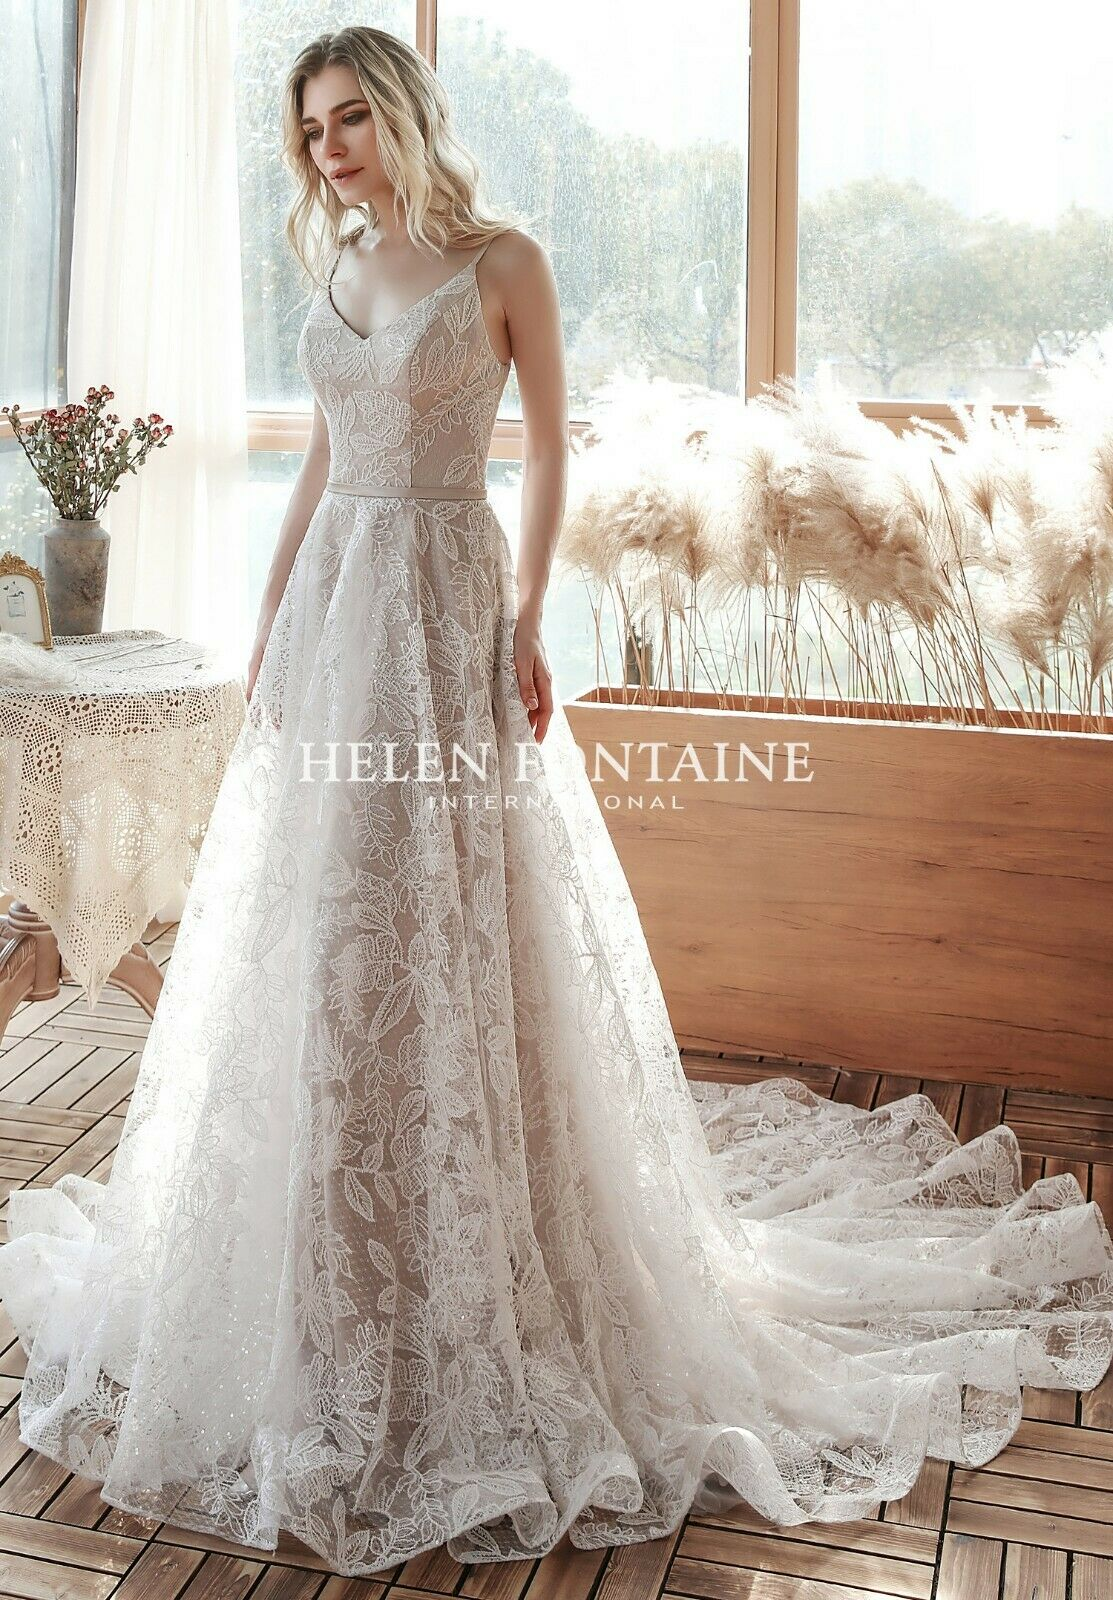 BOHO A-LINE LACE WEDDING DRESS Delivery In About 60 Days